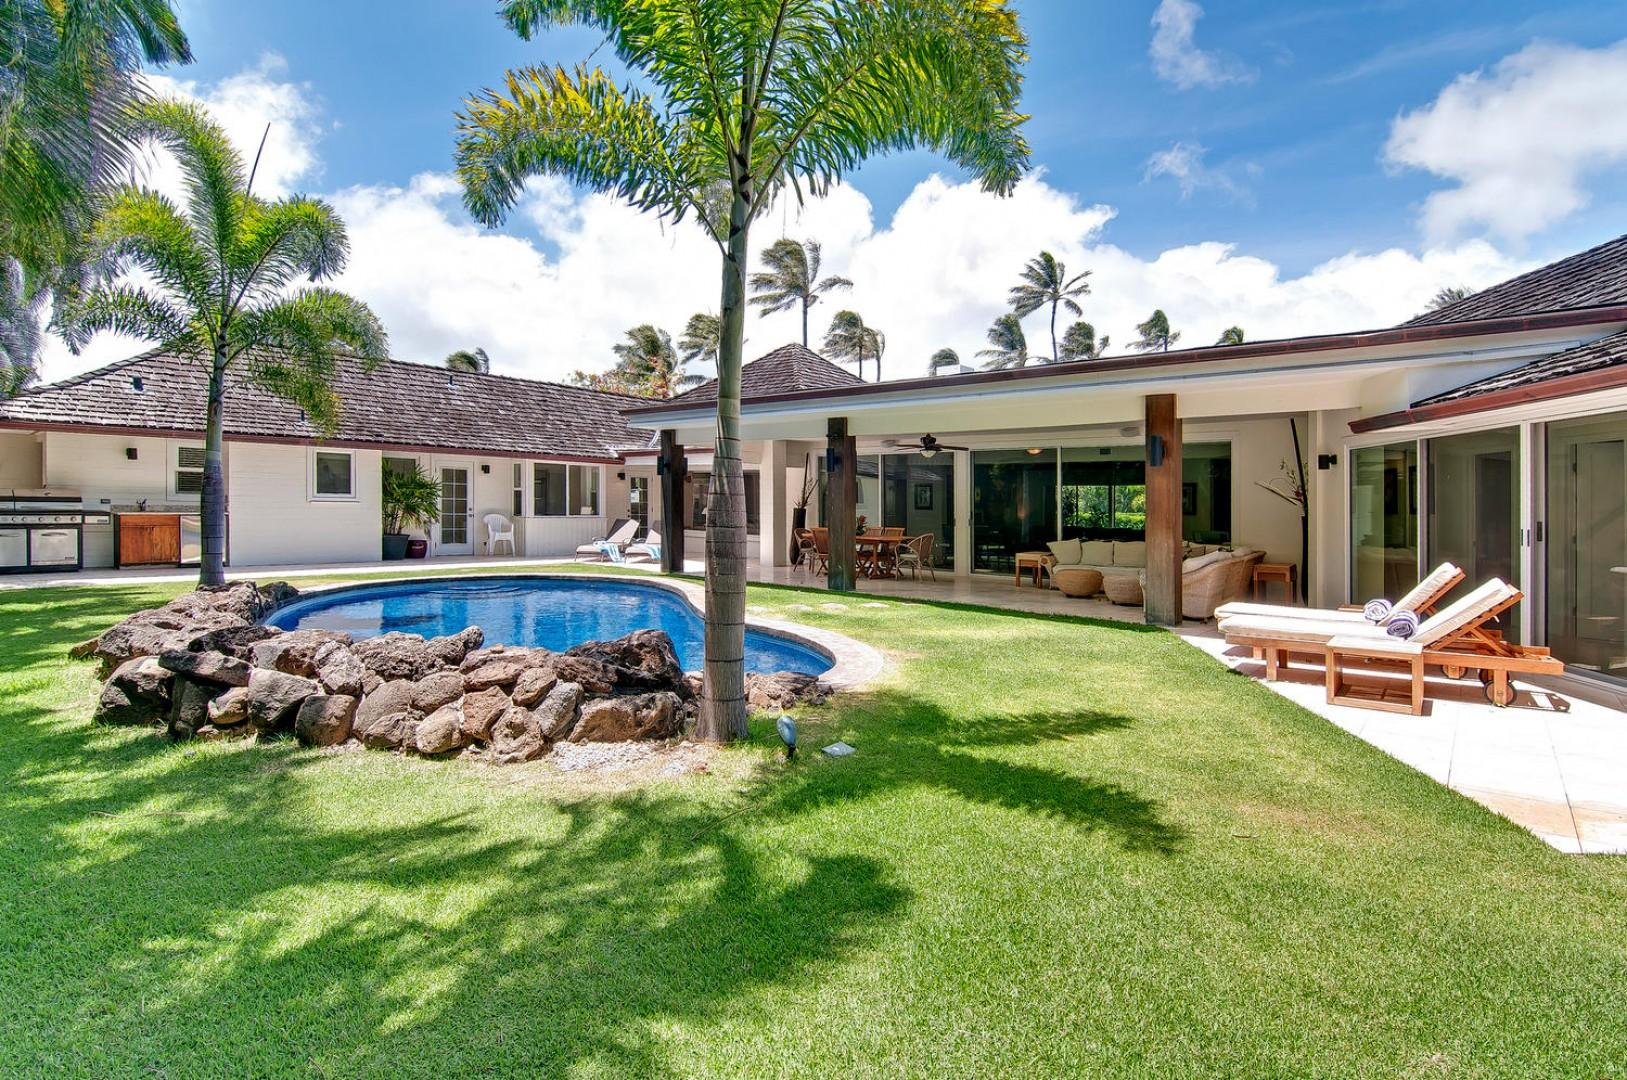 Luxurious Back Yard with Views of the Golf Course